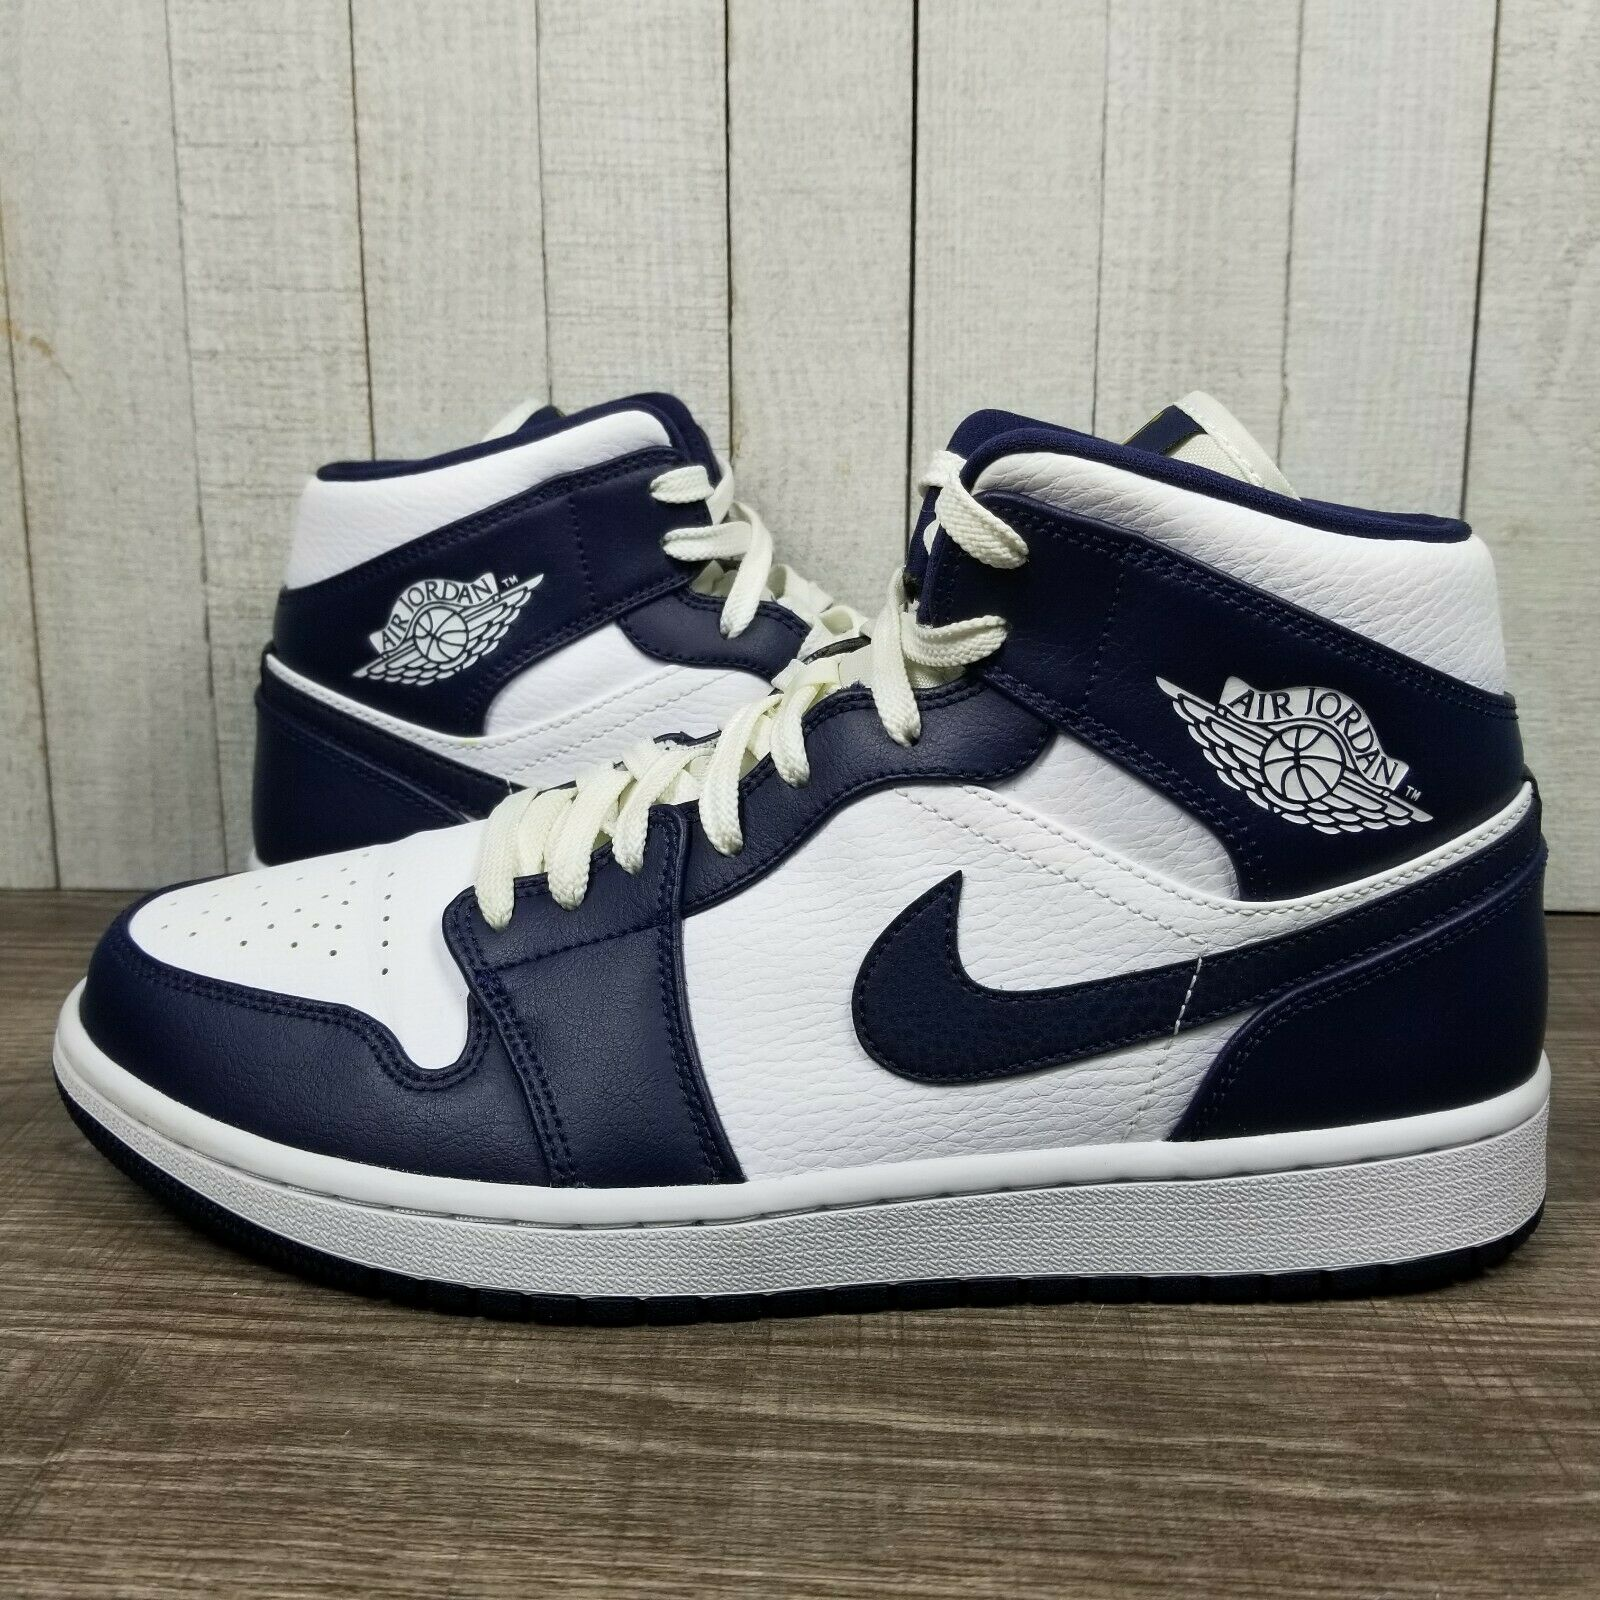 Jordan 1 Mid White Metallic Gold Obsidian GS